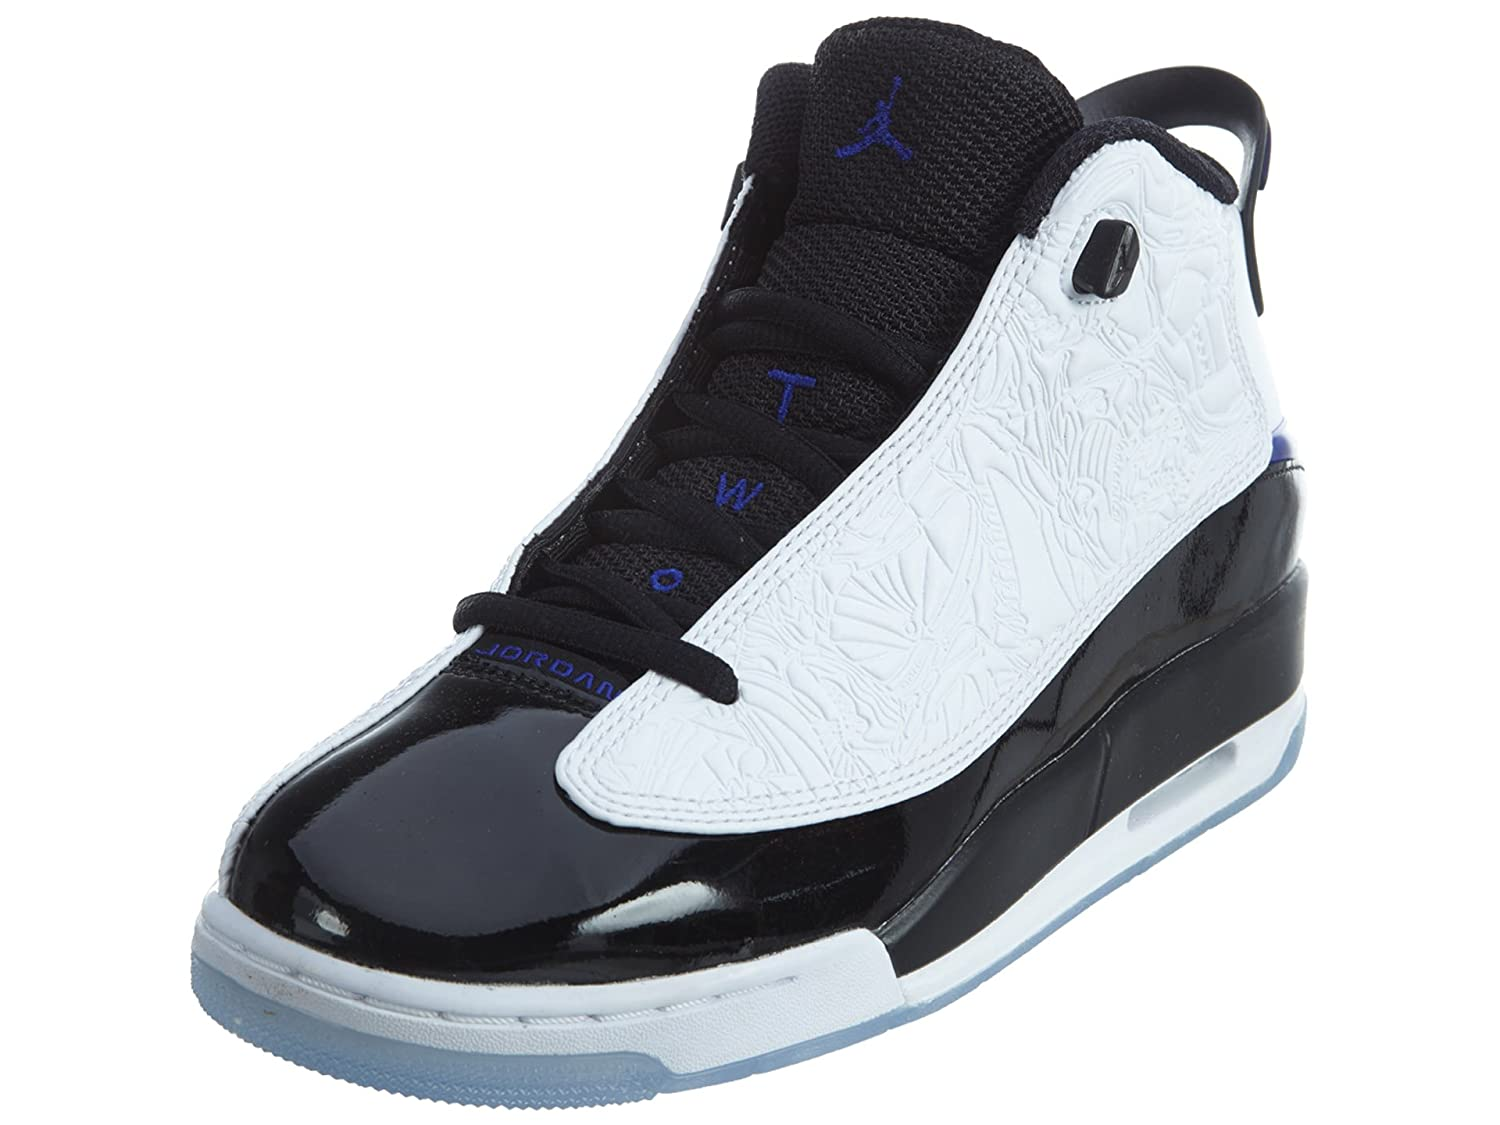 new products c2fb0 a19cc Jordan Dub Zero Big Kids Style  311047-106 Size  6.5 Y US  Amazon.co.uk   Shoes   Bags